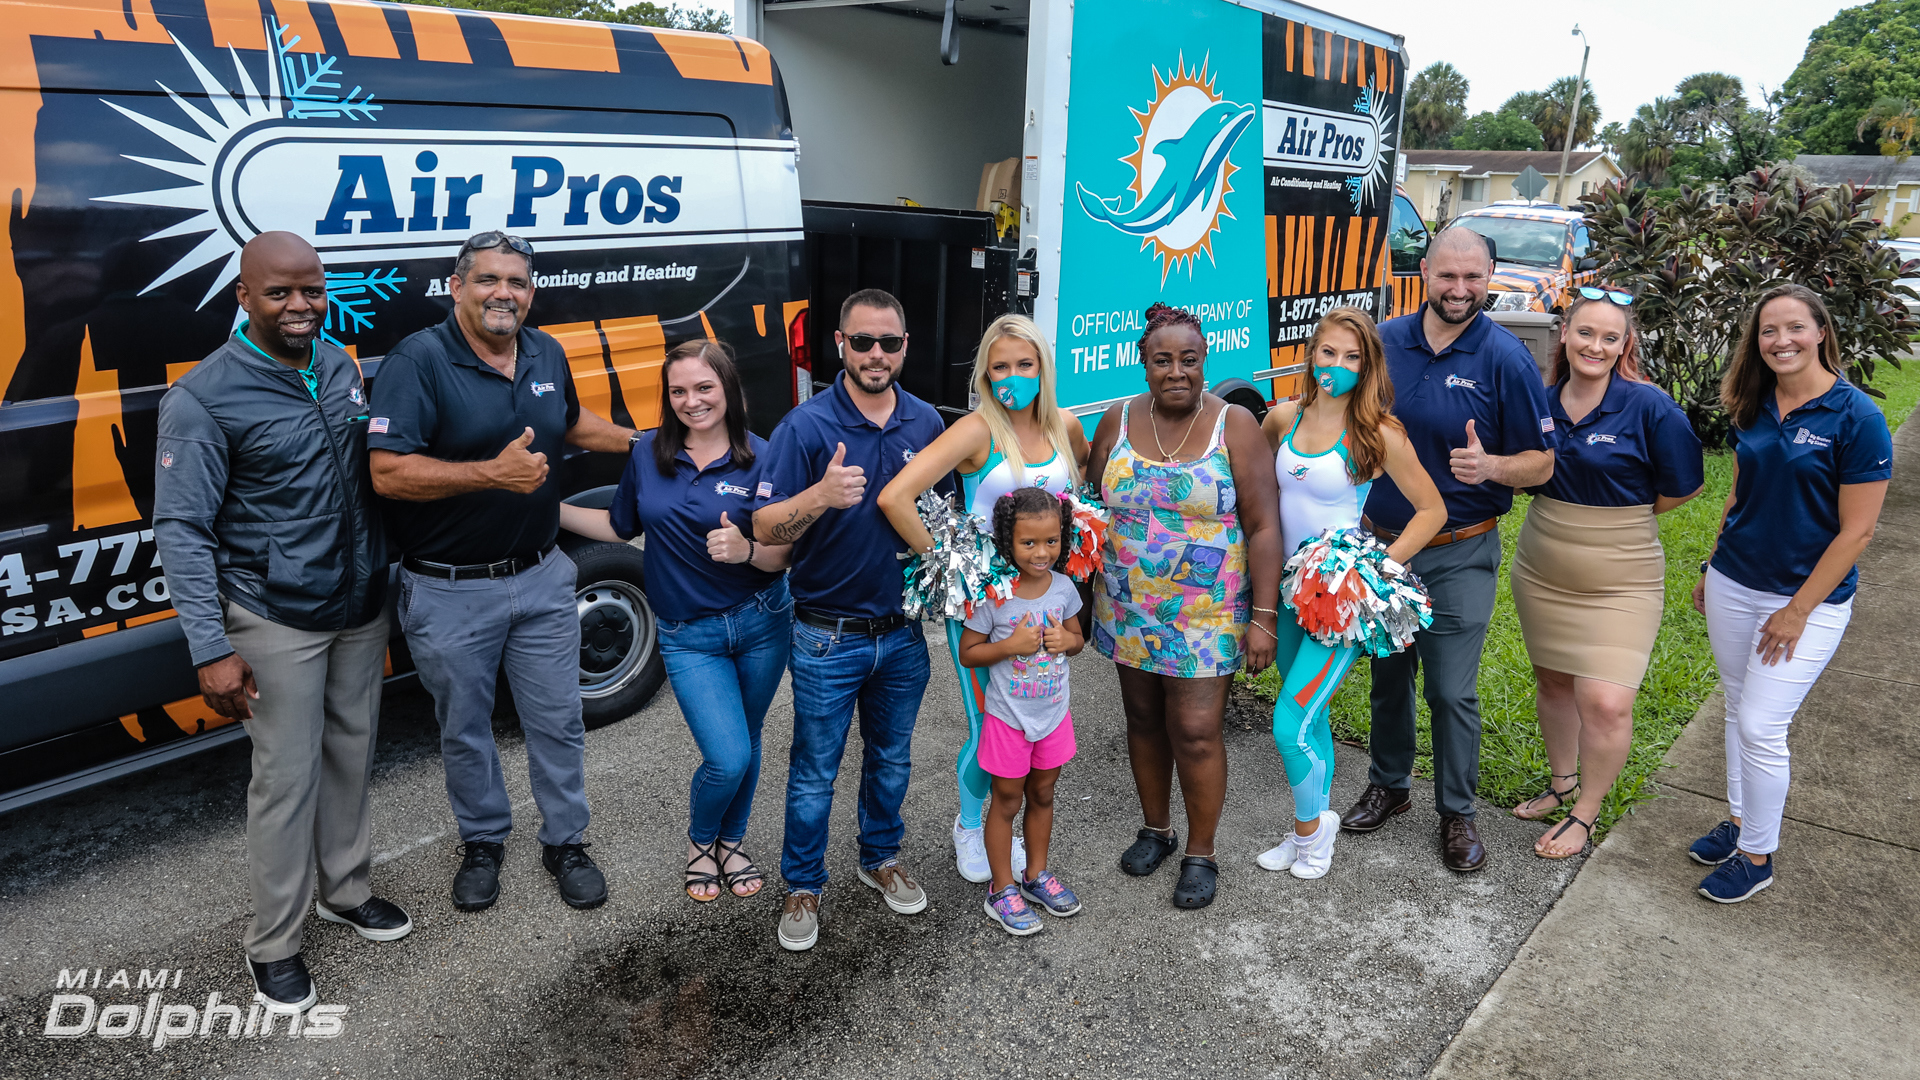 The Miami Dolphins partake in  AirPros Surprise Donation at Ft Lauderdale FL, on July 8th, 2021. (Jose A. Pineiro/Miami Dolphins)